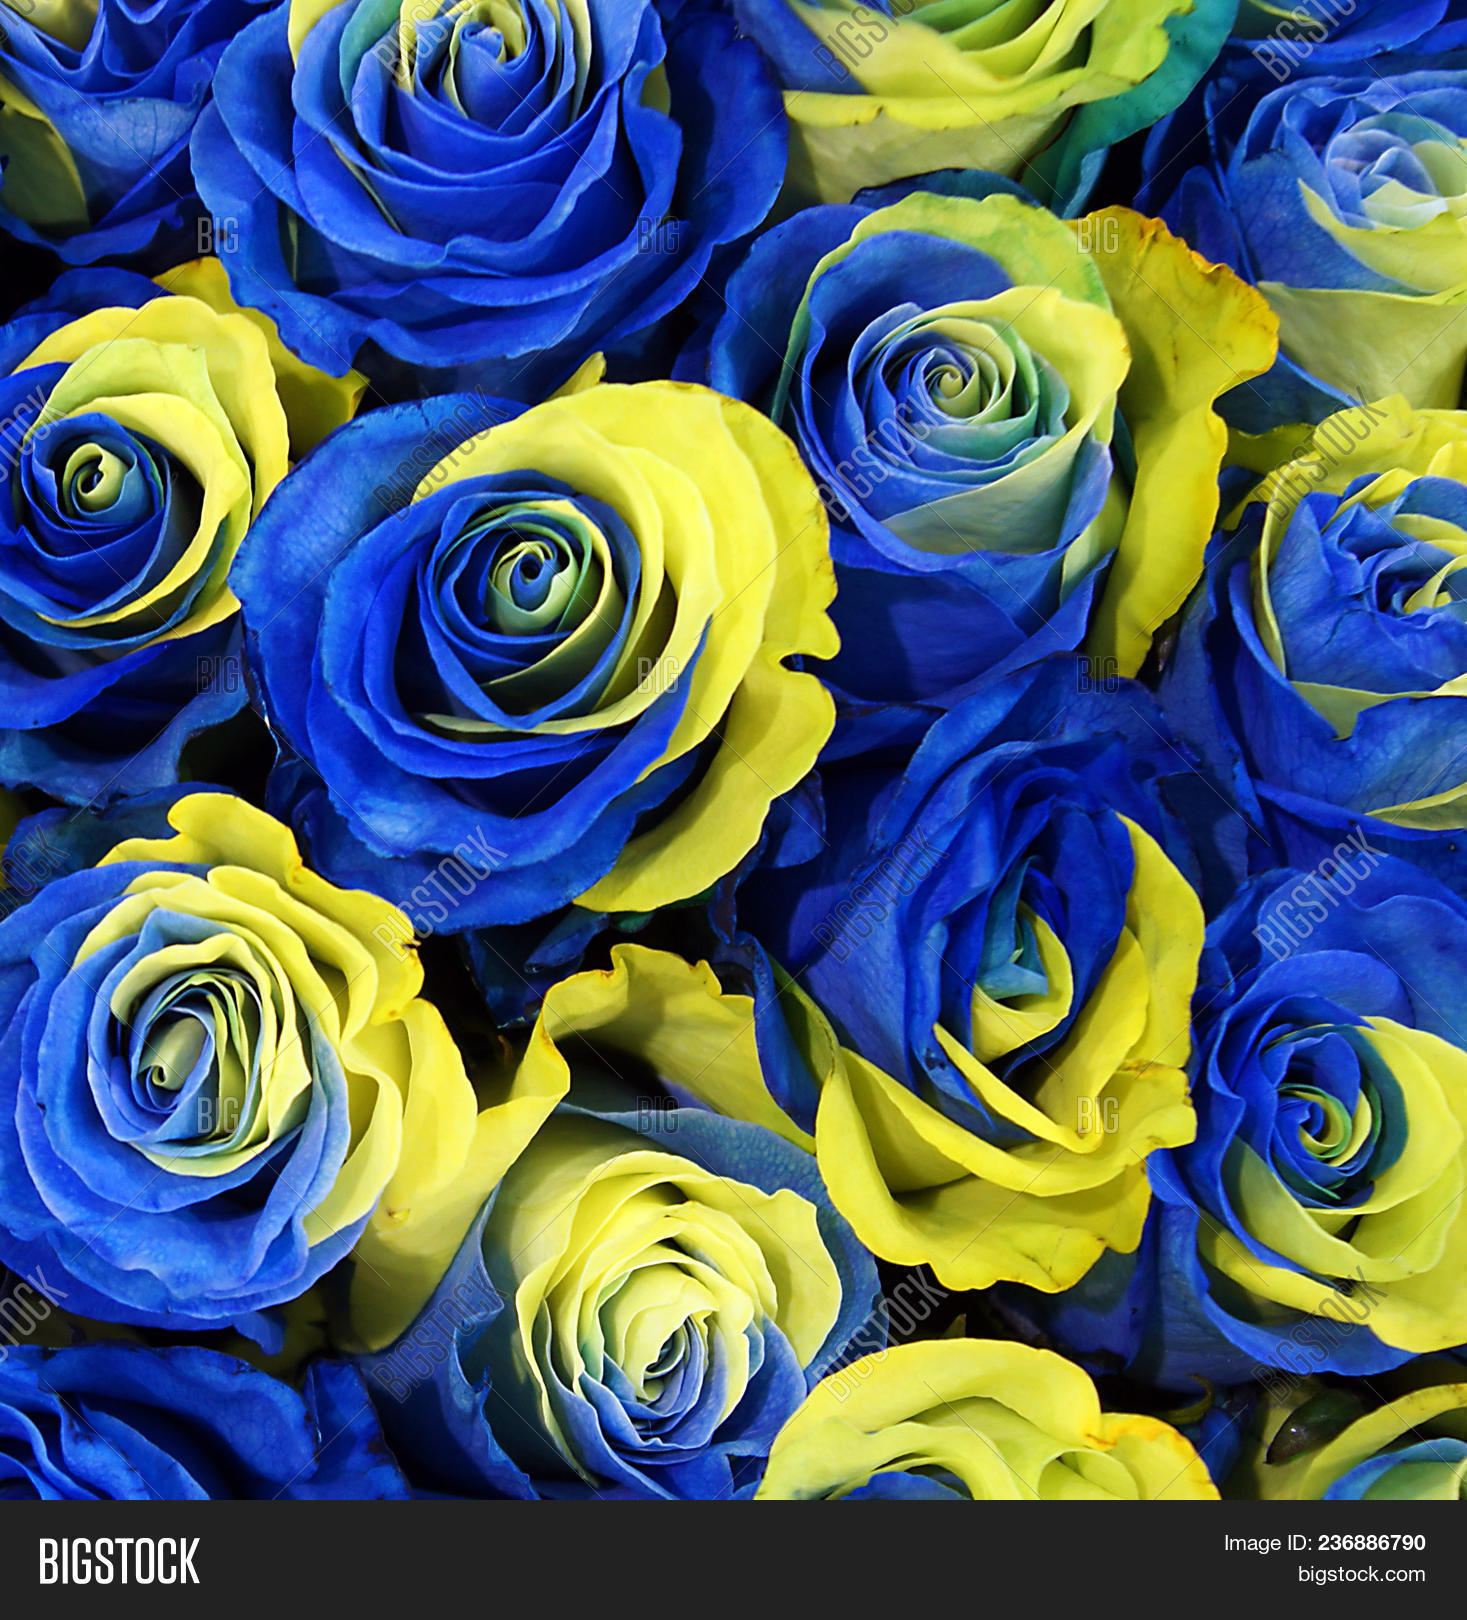 Blue Yellow Flowers Image Photo Free Trial Bigstock